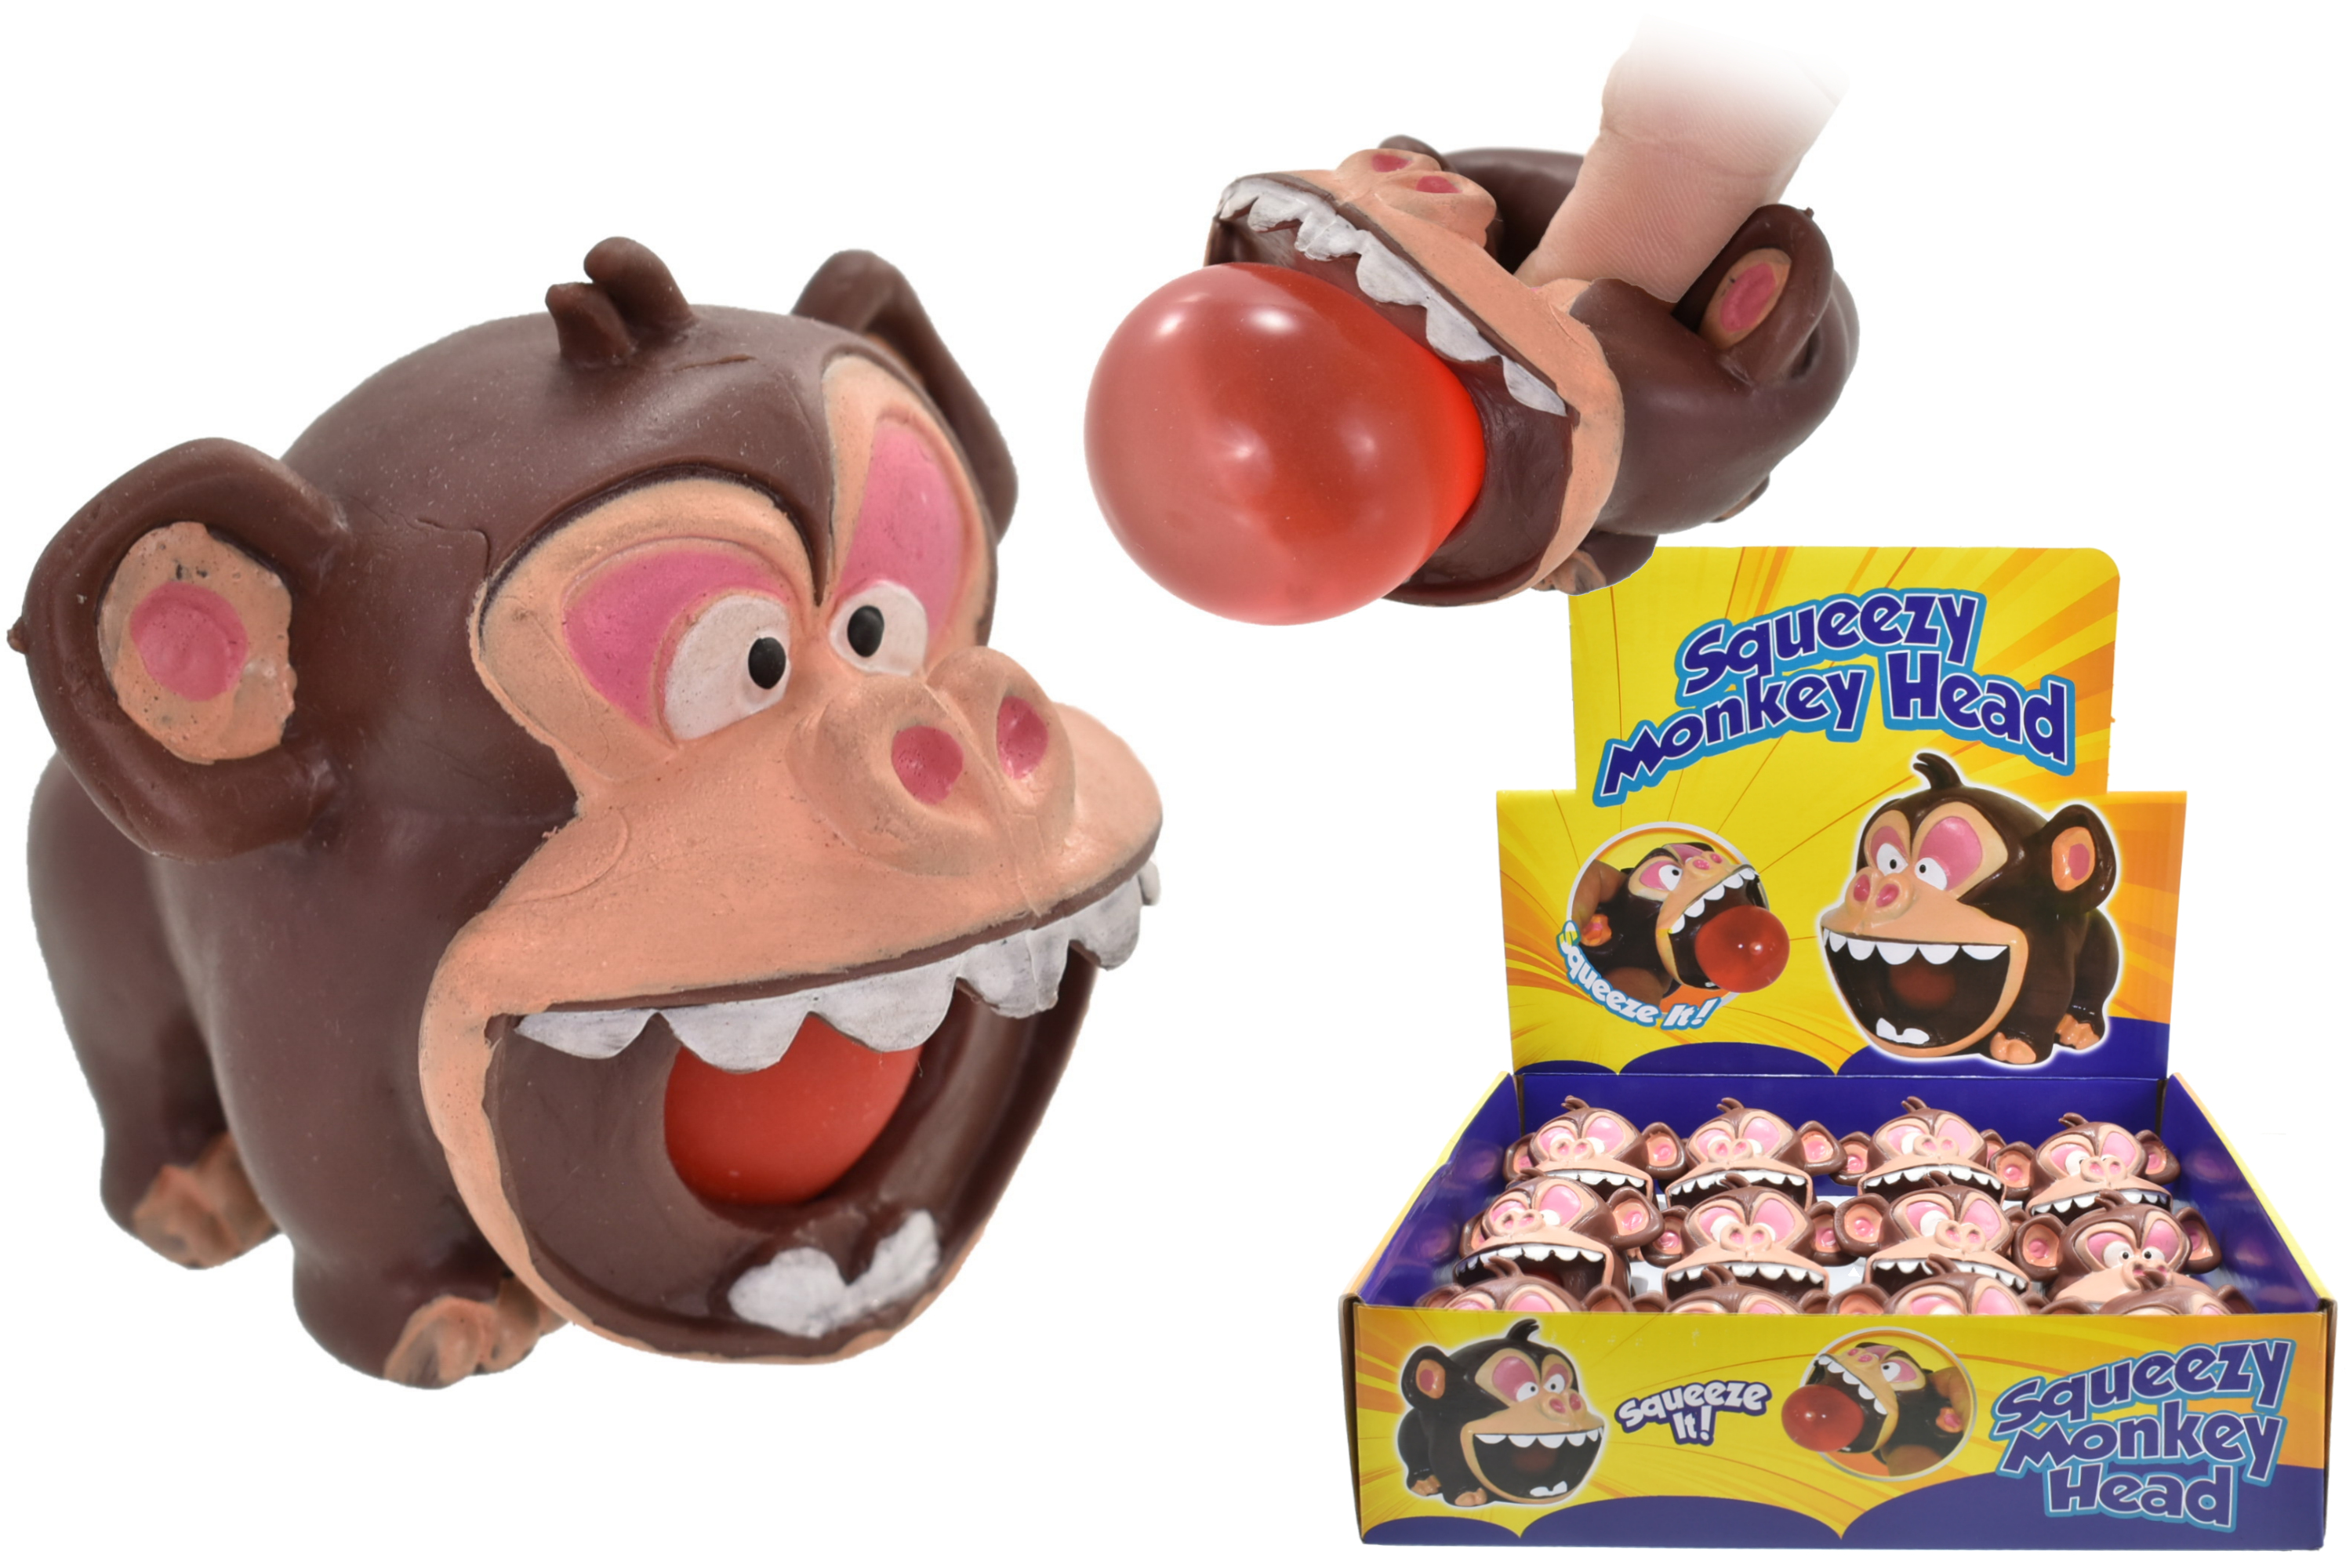 Squeeze Monkey Head In Display Box